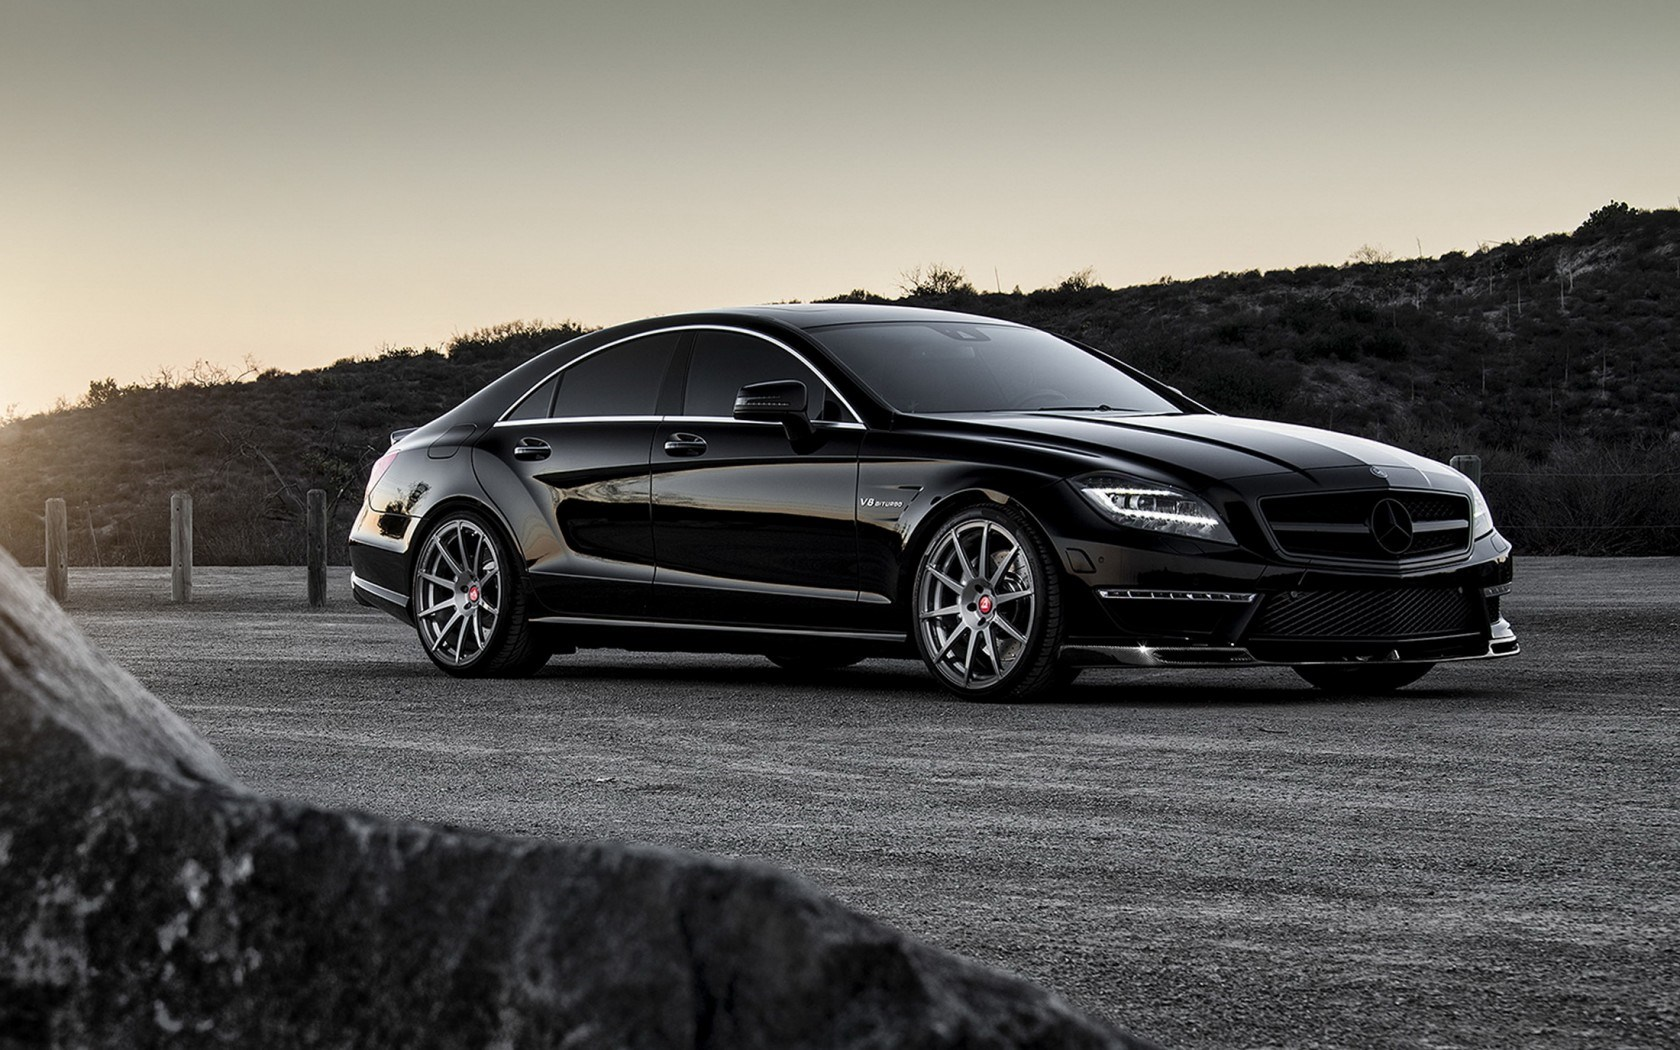 mercedes benz cls 63 amg tuning car wallpaper 1680x1050. Black Bedroom Furniture Sets. Home Design Ideas